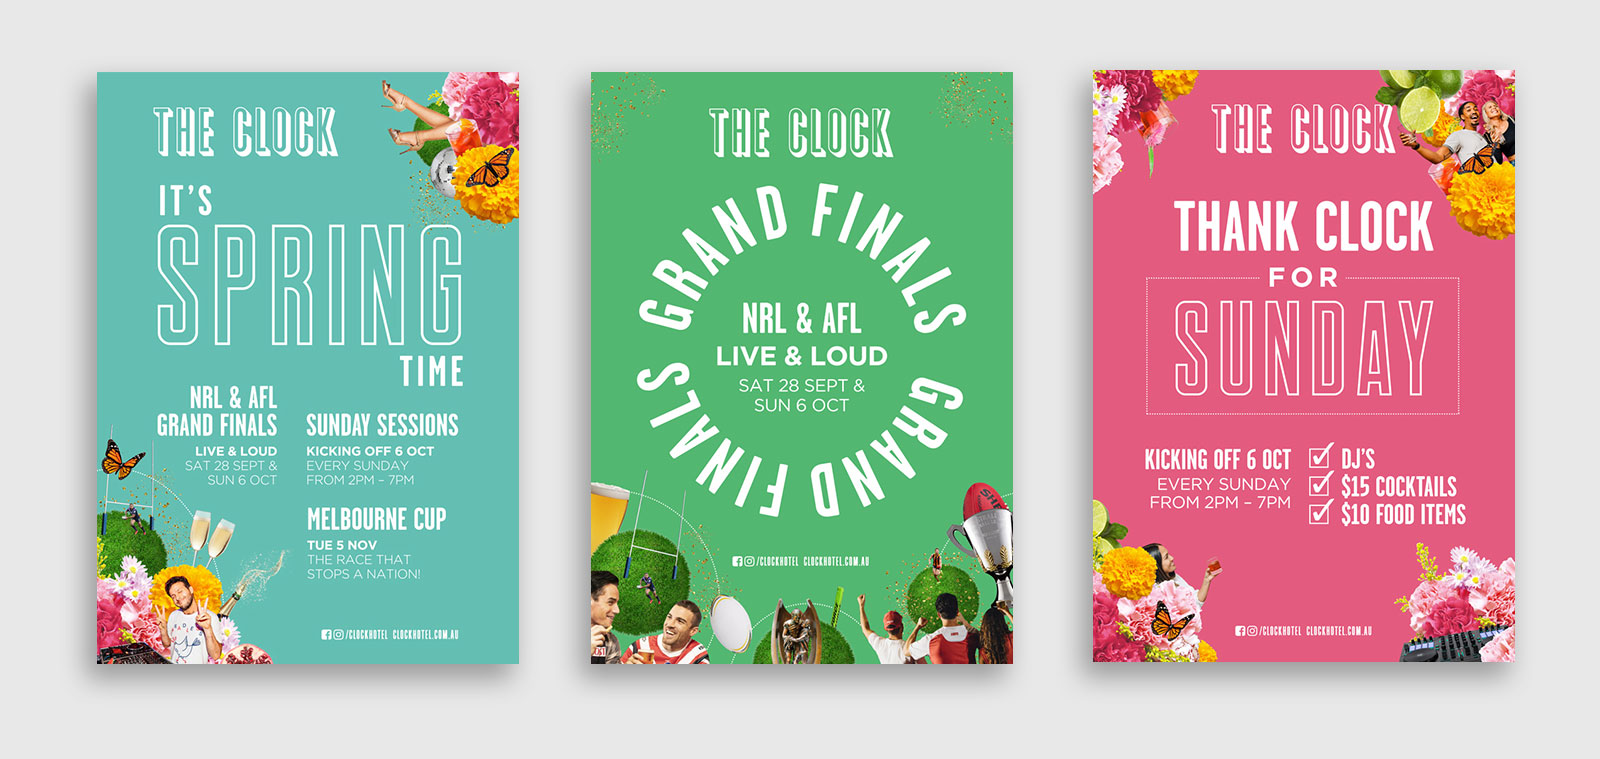 a series of three posters for a spring campaign at the clock hotel